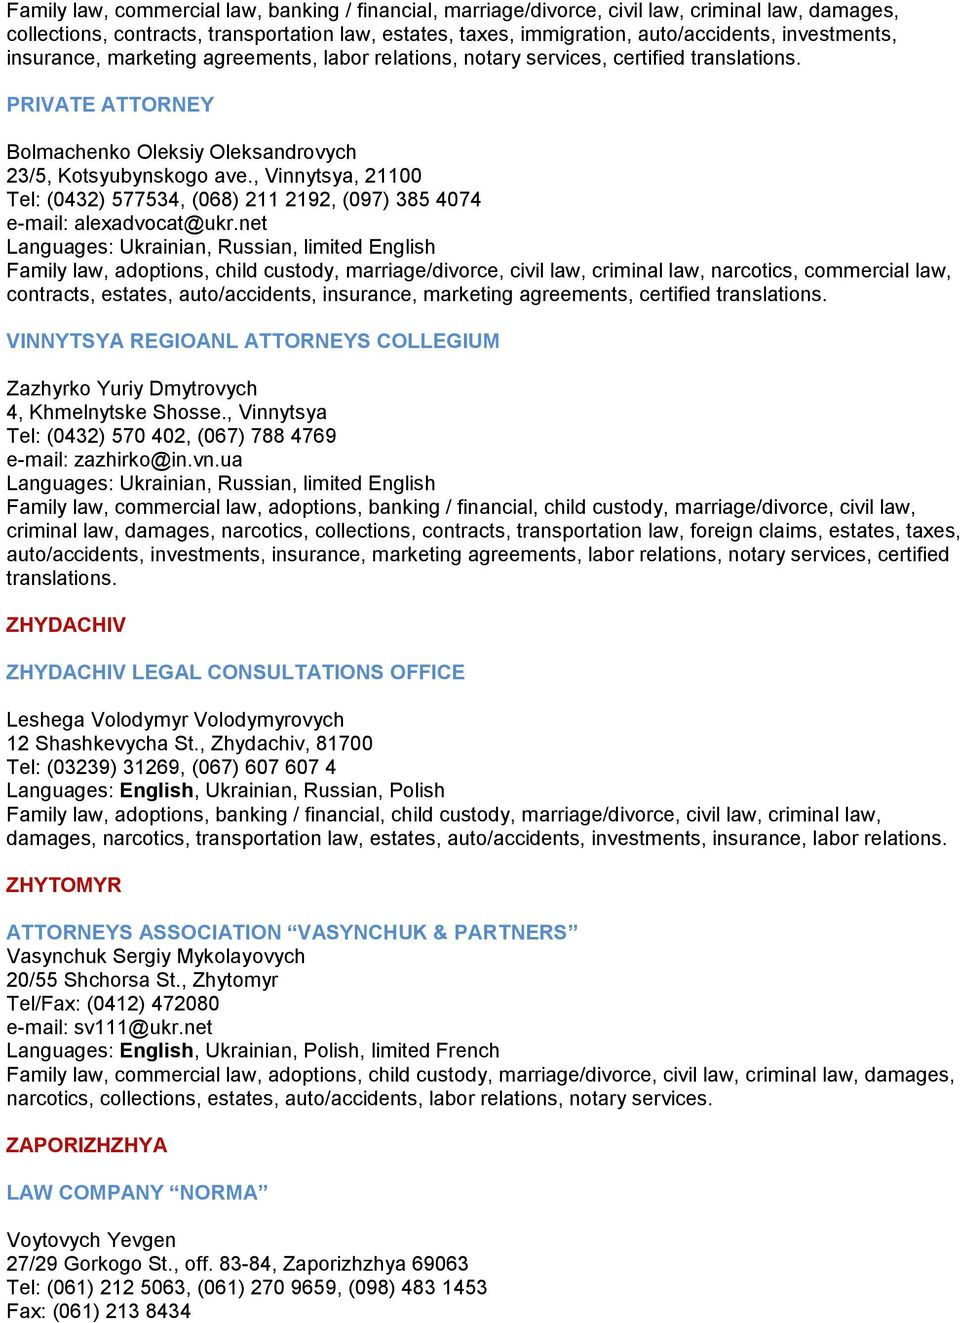 Lawyer services in Uzhgorod region: a selection of sites